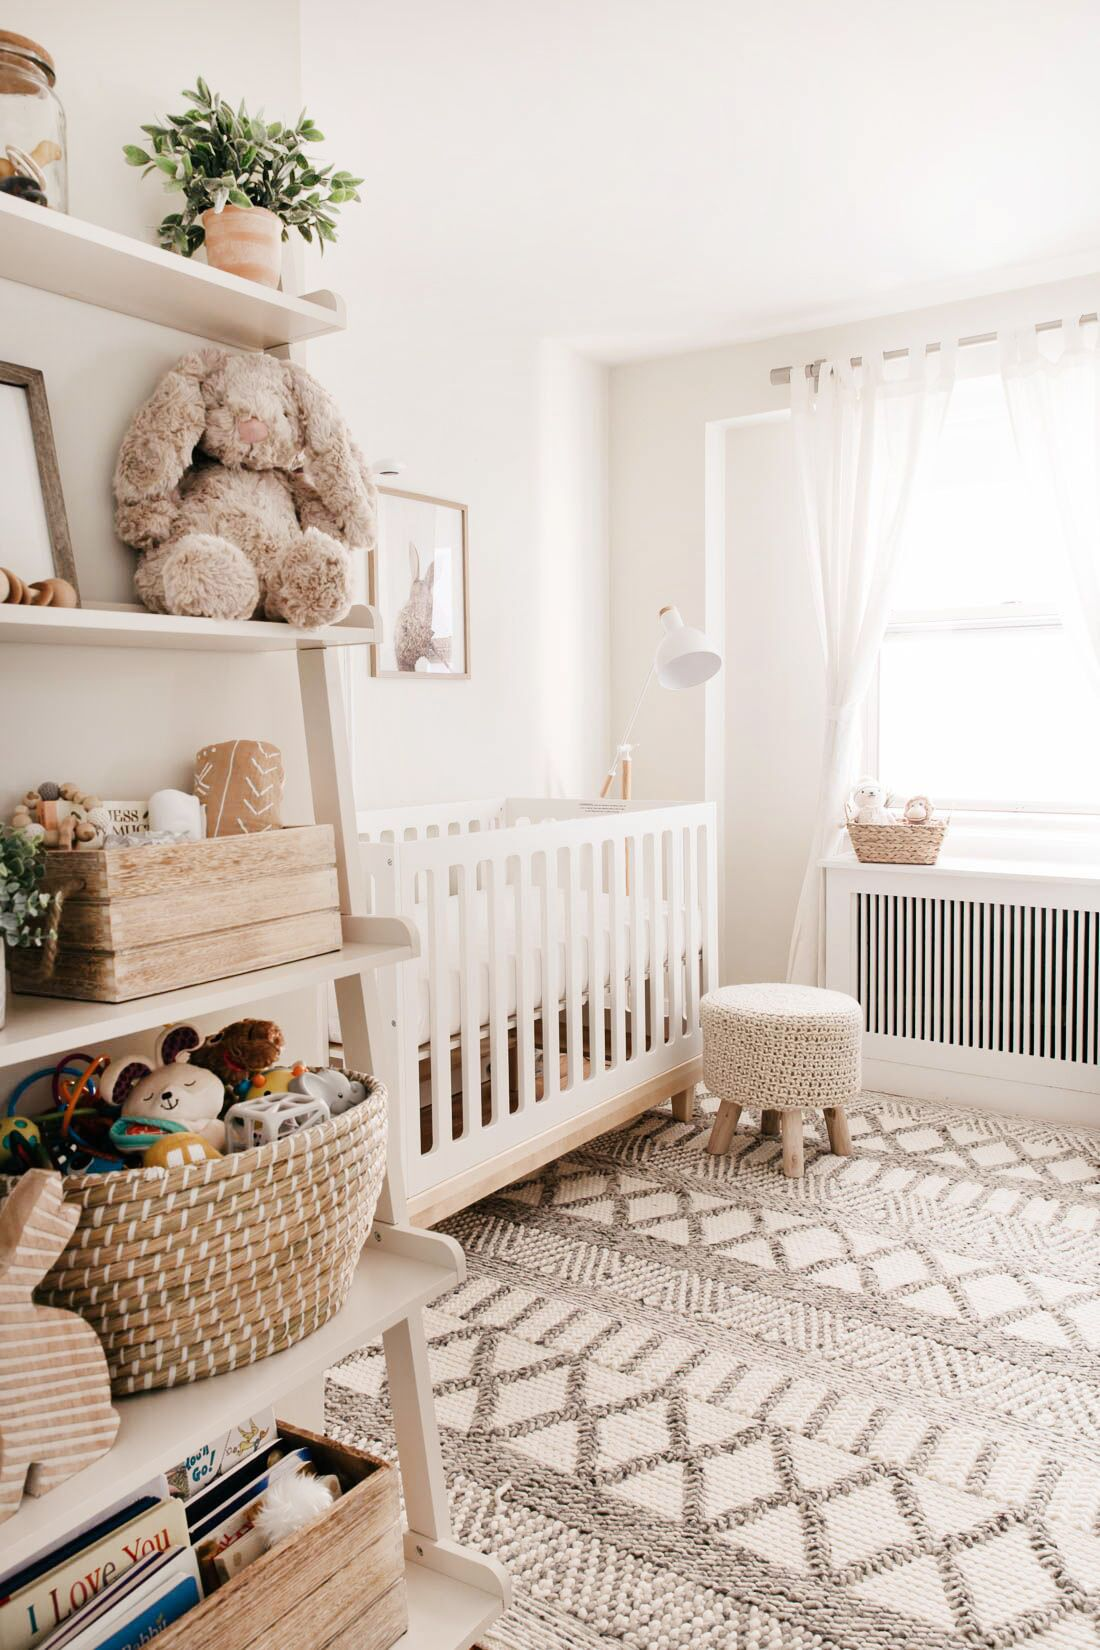 Baby Room Accessories: Nursery Reveal! A Gender Neutral Look With Blogger Kendall